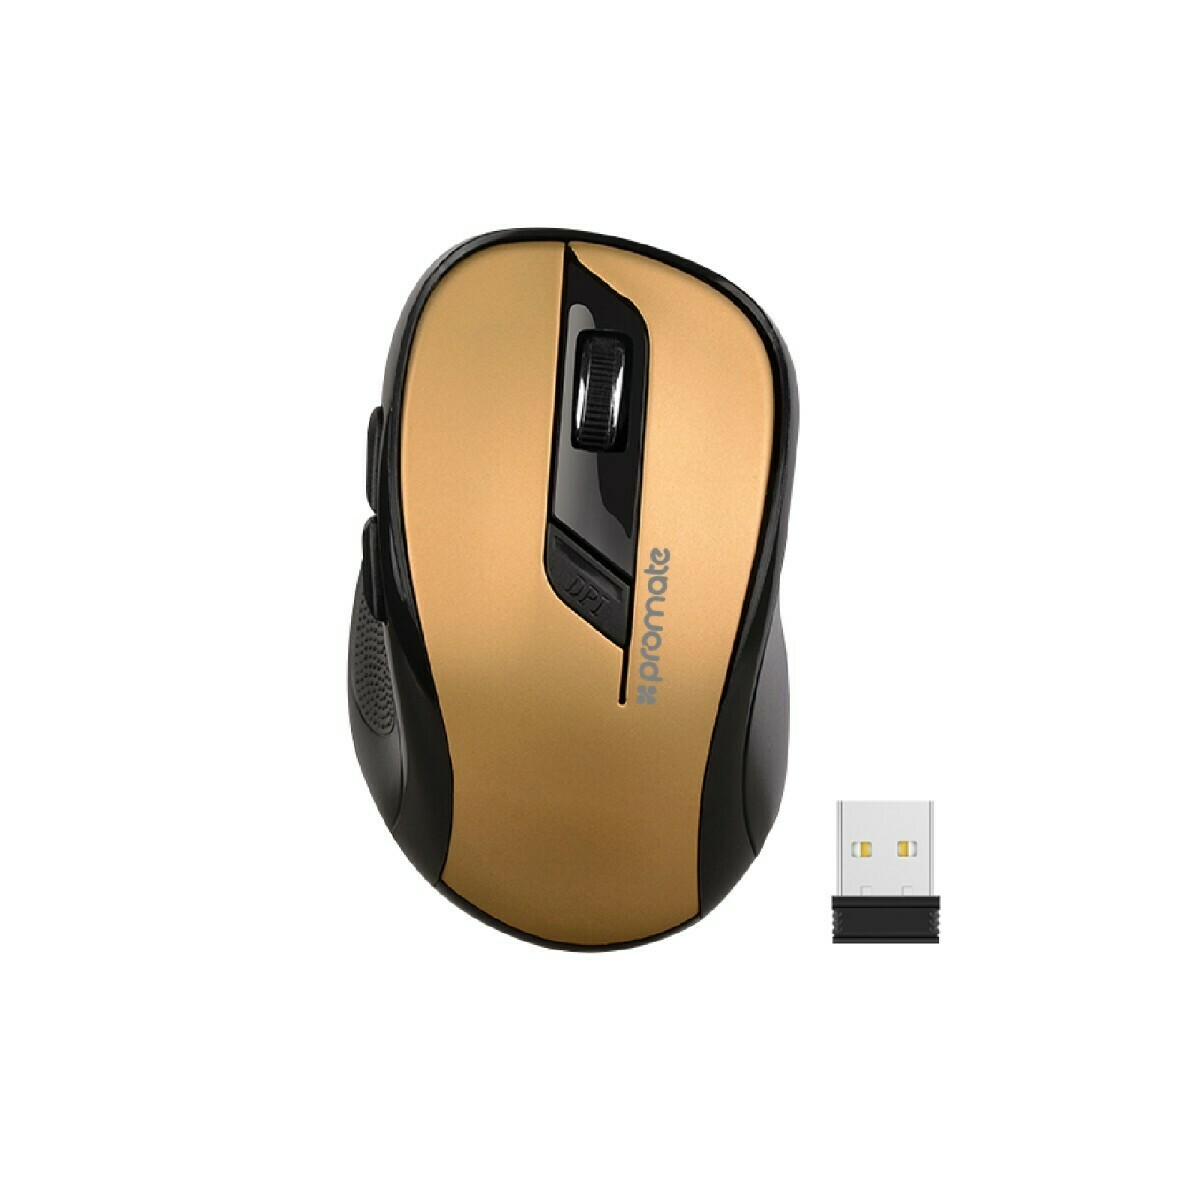 Clix-7 Ergonomic 2.4GHz Wireless Mouse